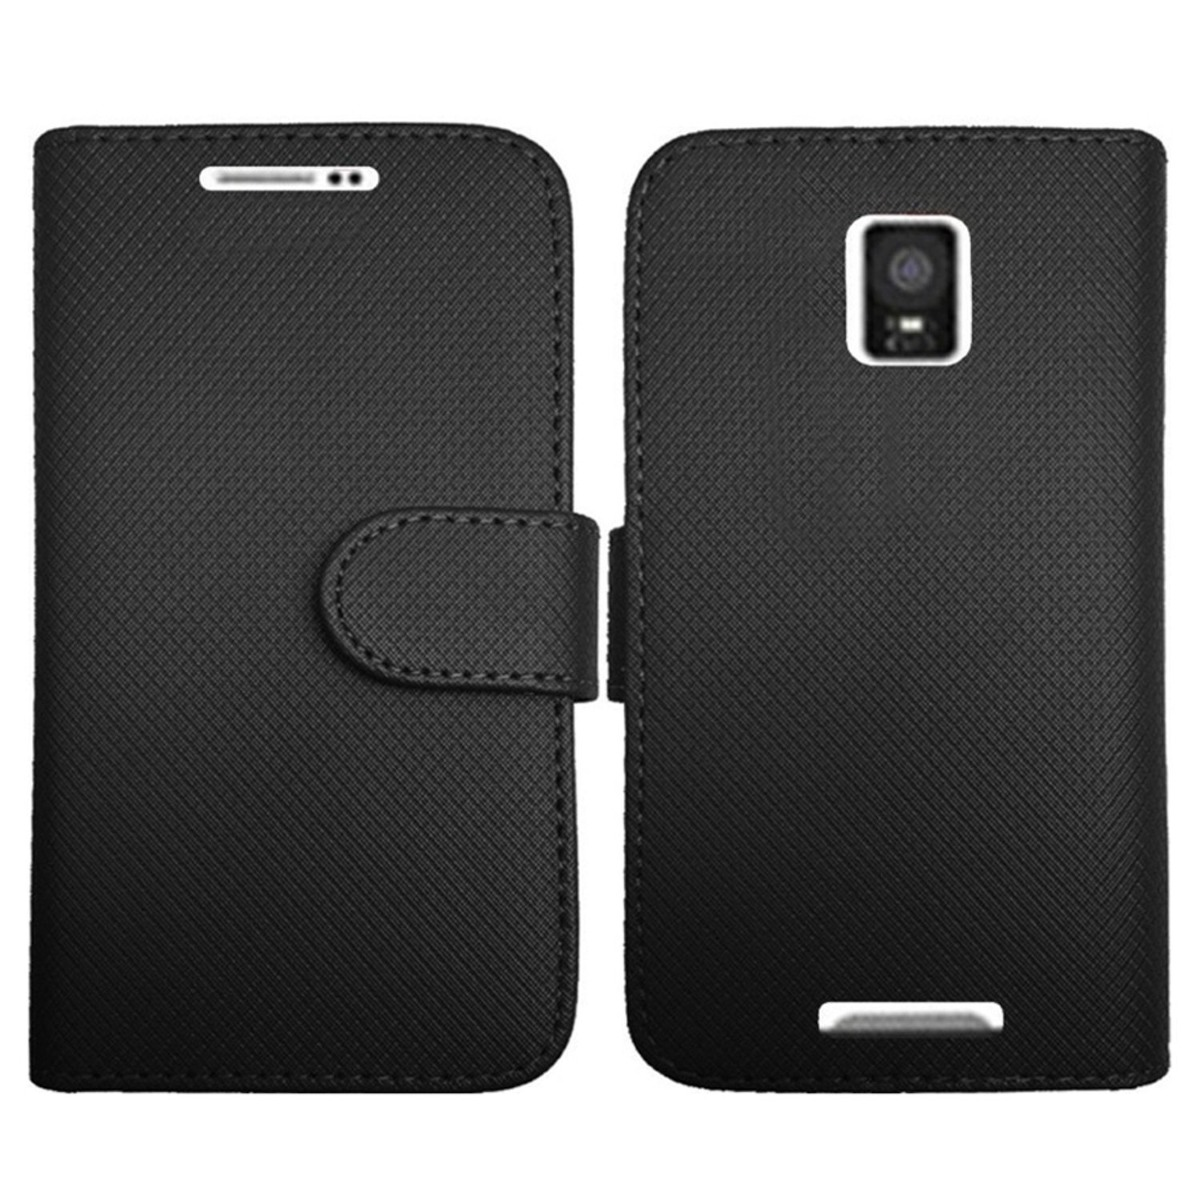 new product d609f bafd1 Case Wallet Hr Wireless Samsung Note 4 Pu Leather Flip W